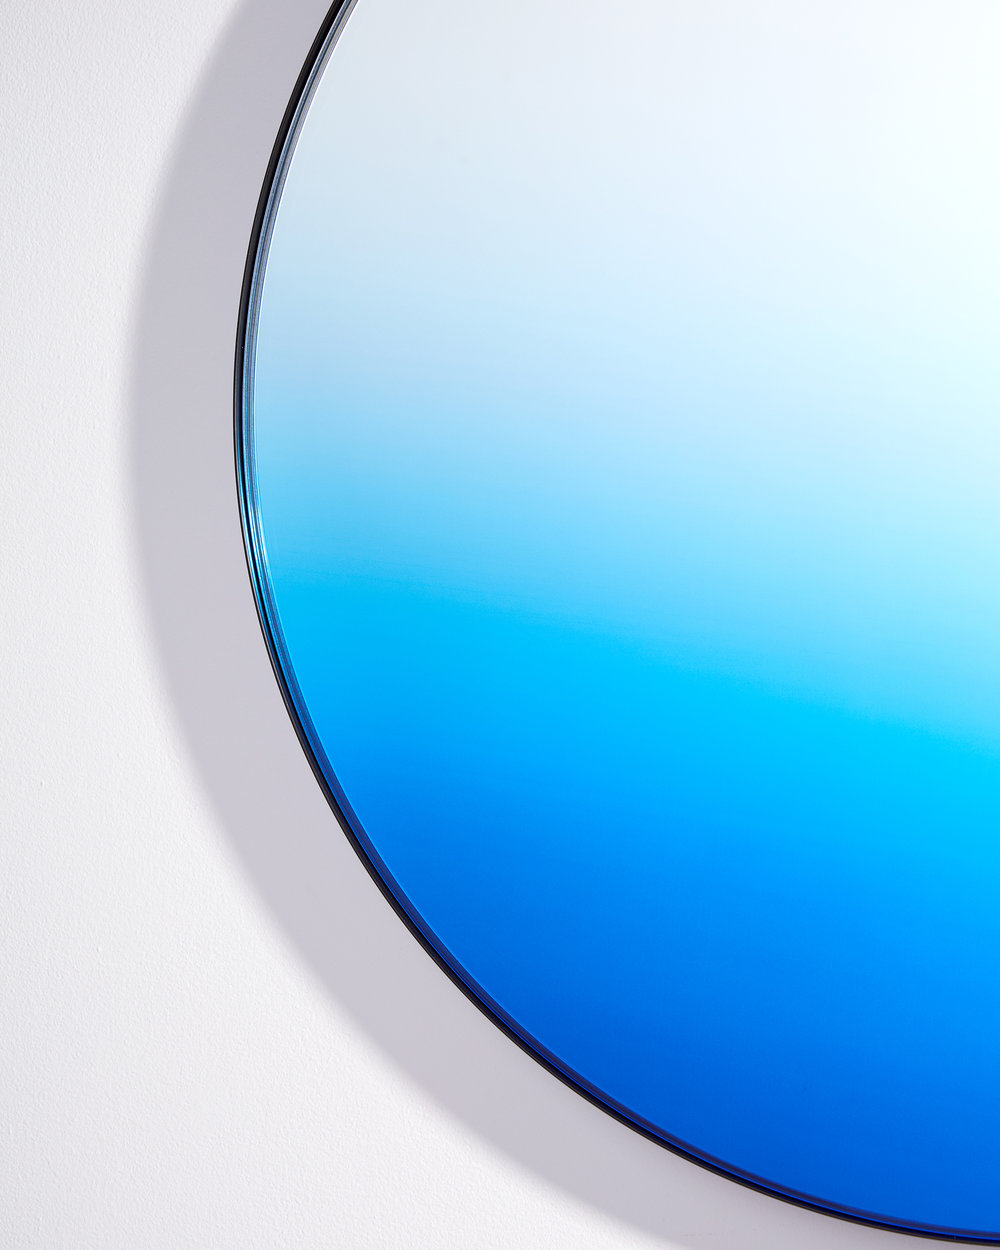 Gradient Mirror_detail_01.jpg